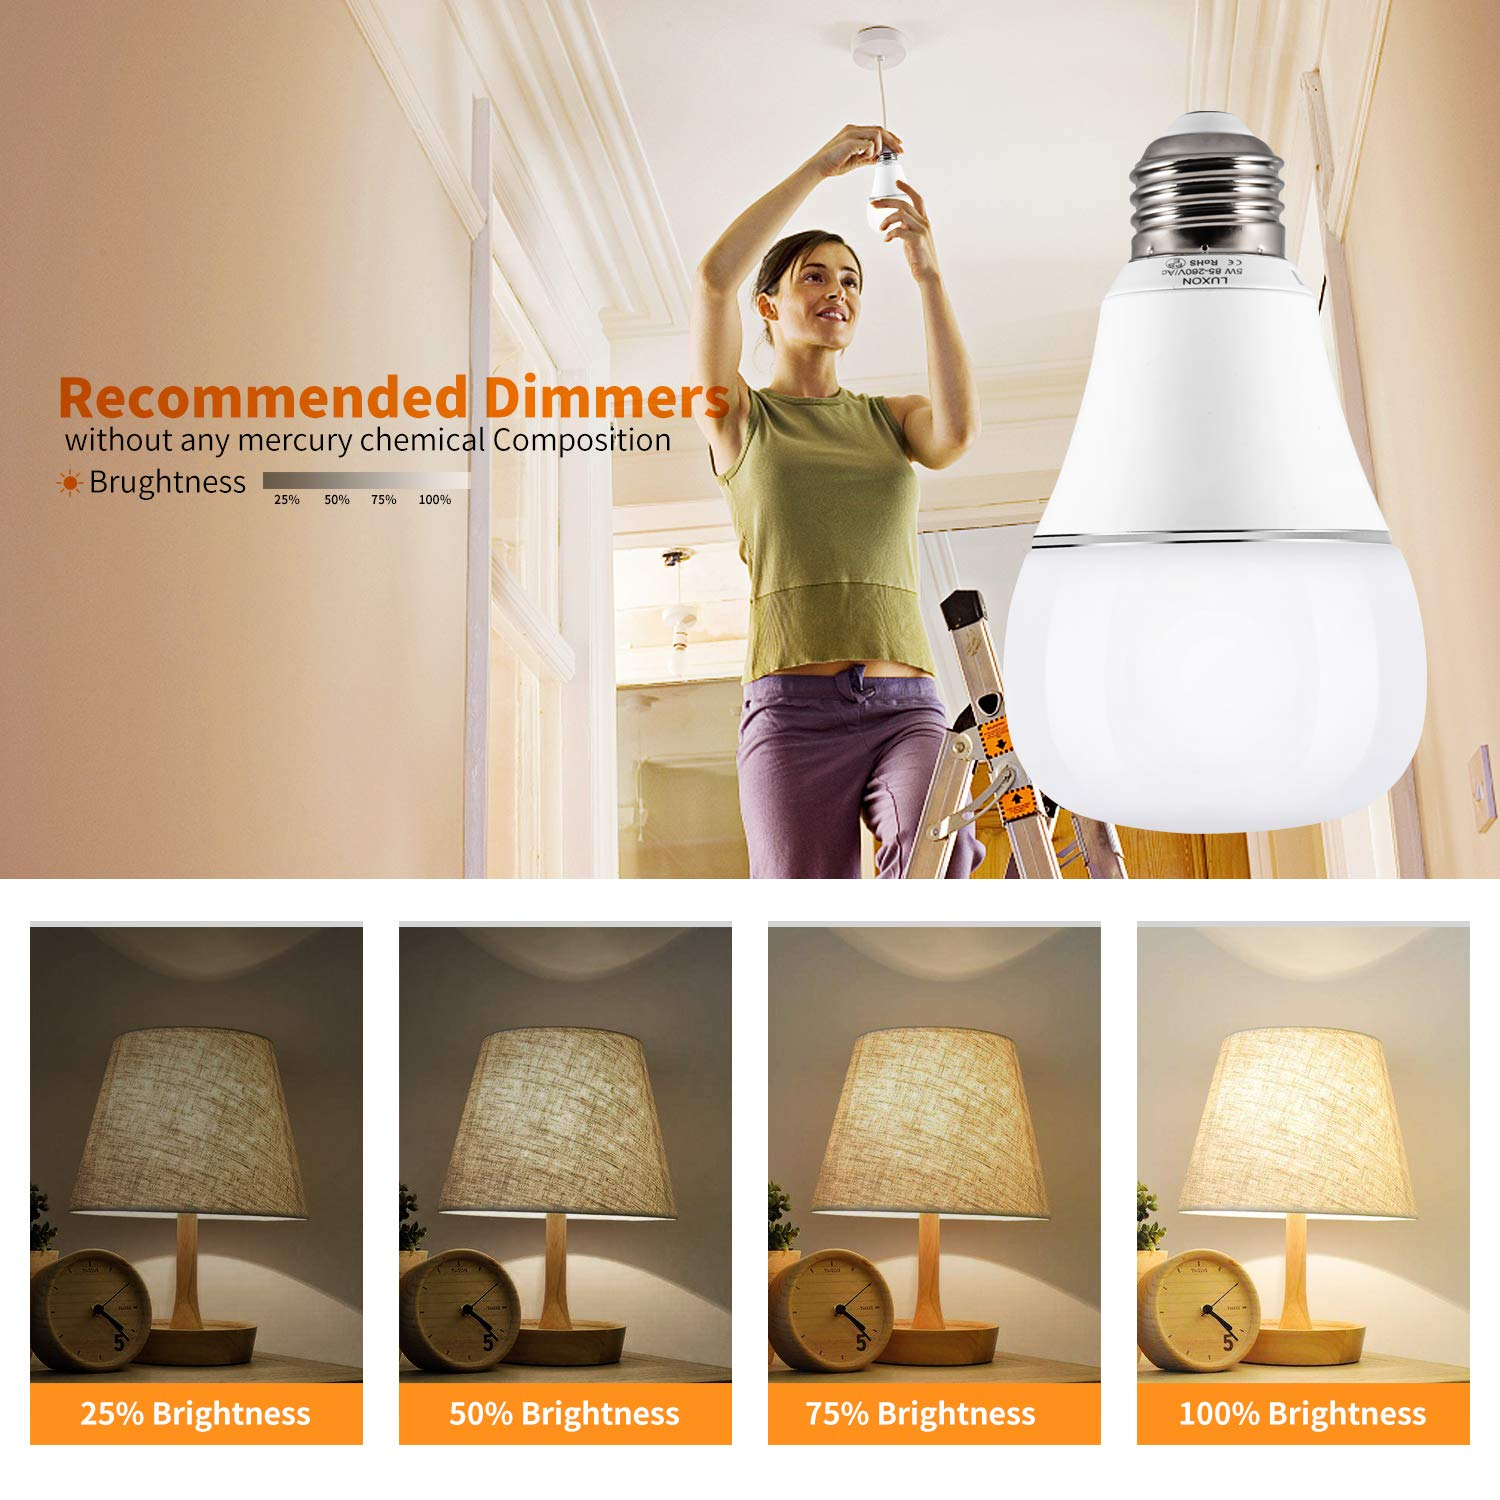 Smart WI-FI LED Light Bulb RGBW Color Changing E26 Base Smart Dimmable Light Bulb Smartphone Controlled Work with Amazon Alexa/ Google Home by LUXON by LUXON (Image #4)